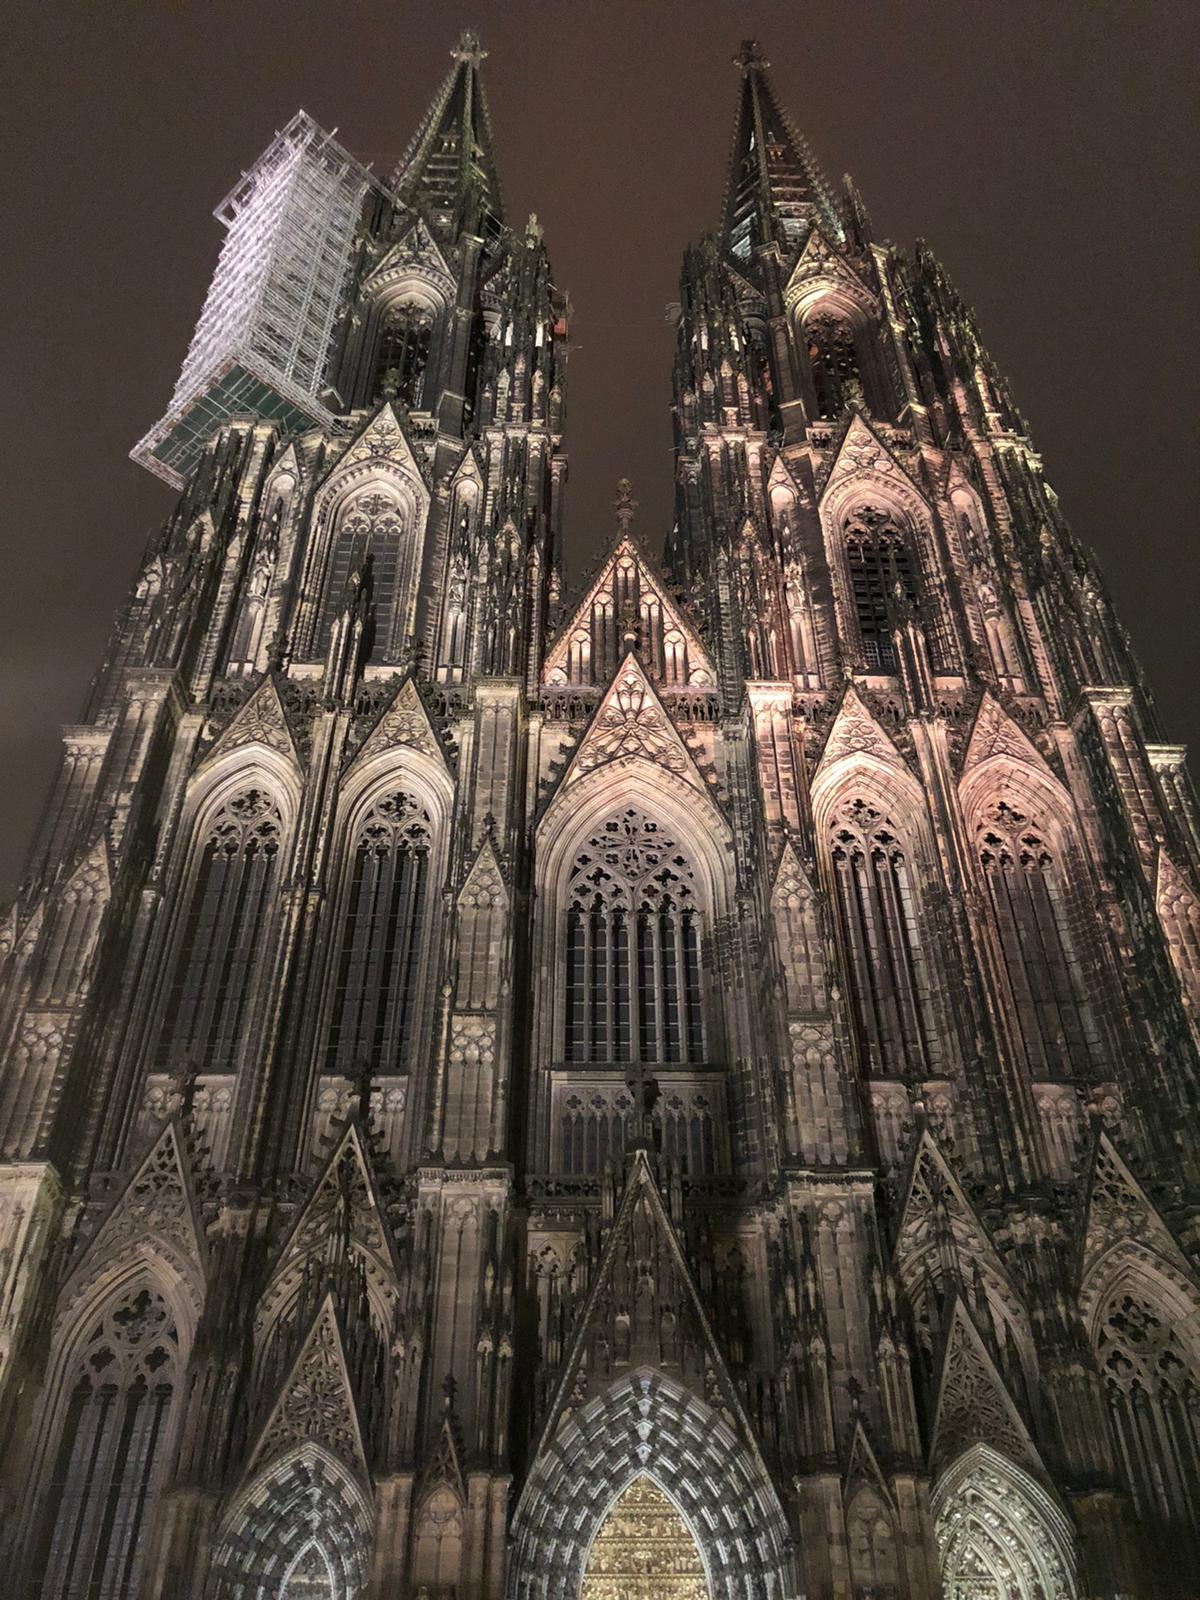 Cologne cathedral spires